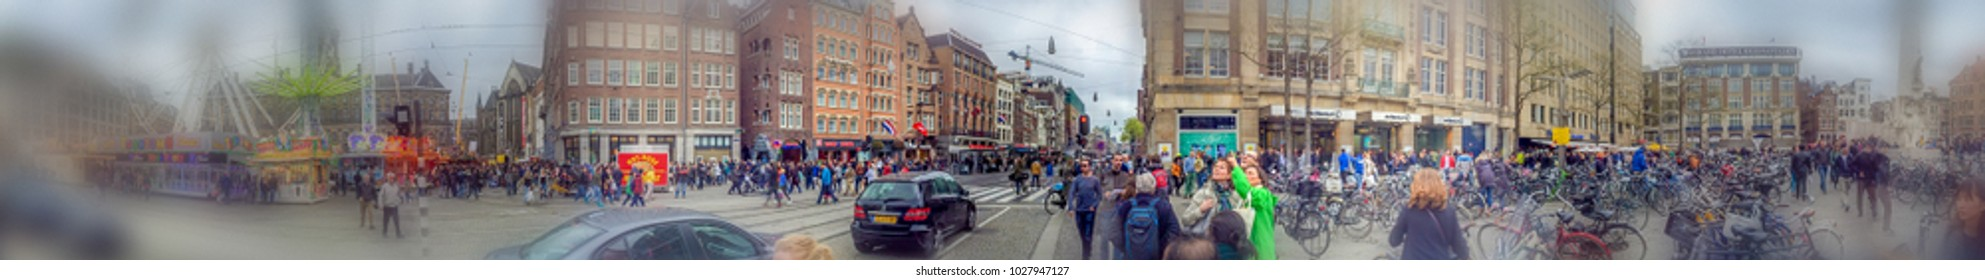 AMSTERDAM - APRIL 2015: Tourists walk in Dam Square. The city attracts 15 million people annually.